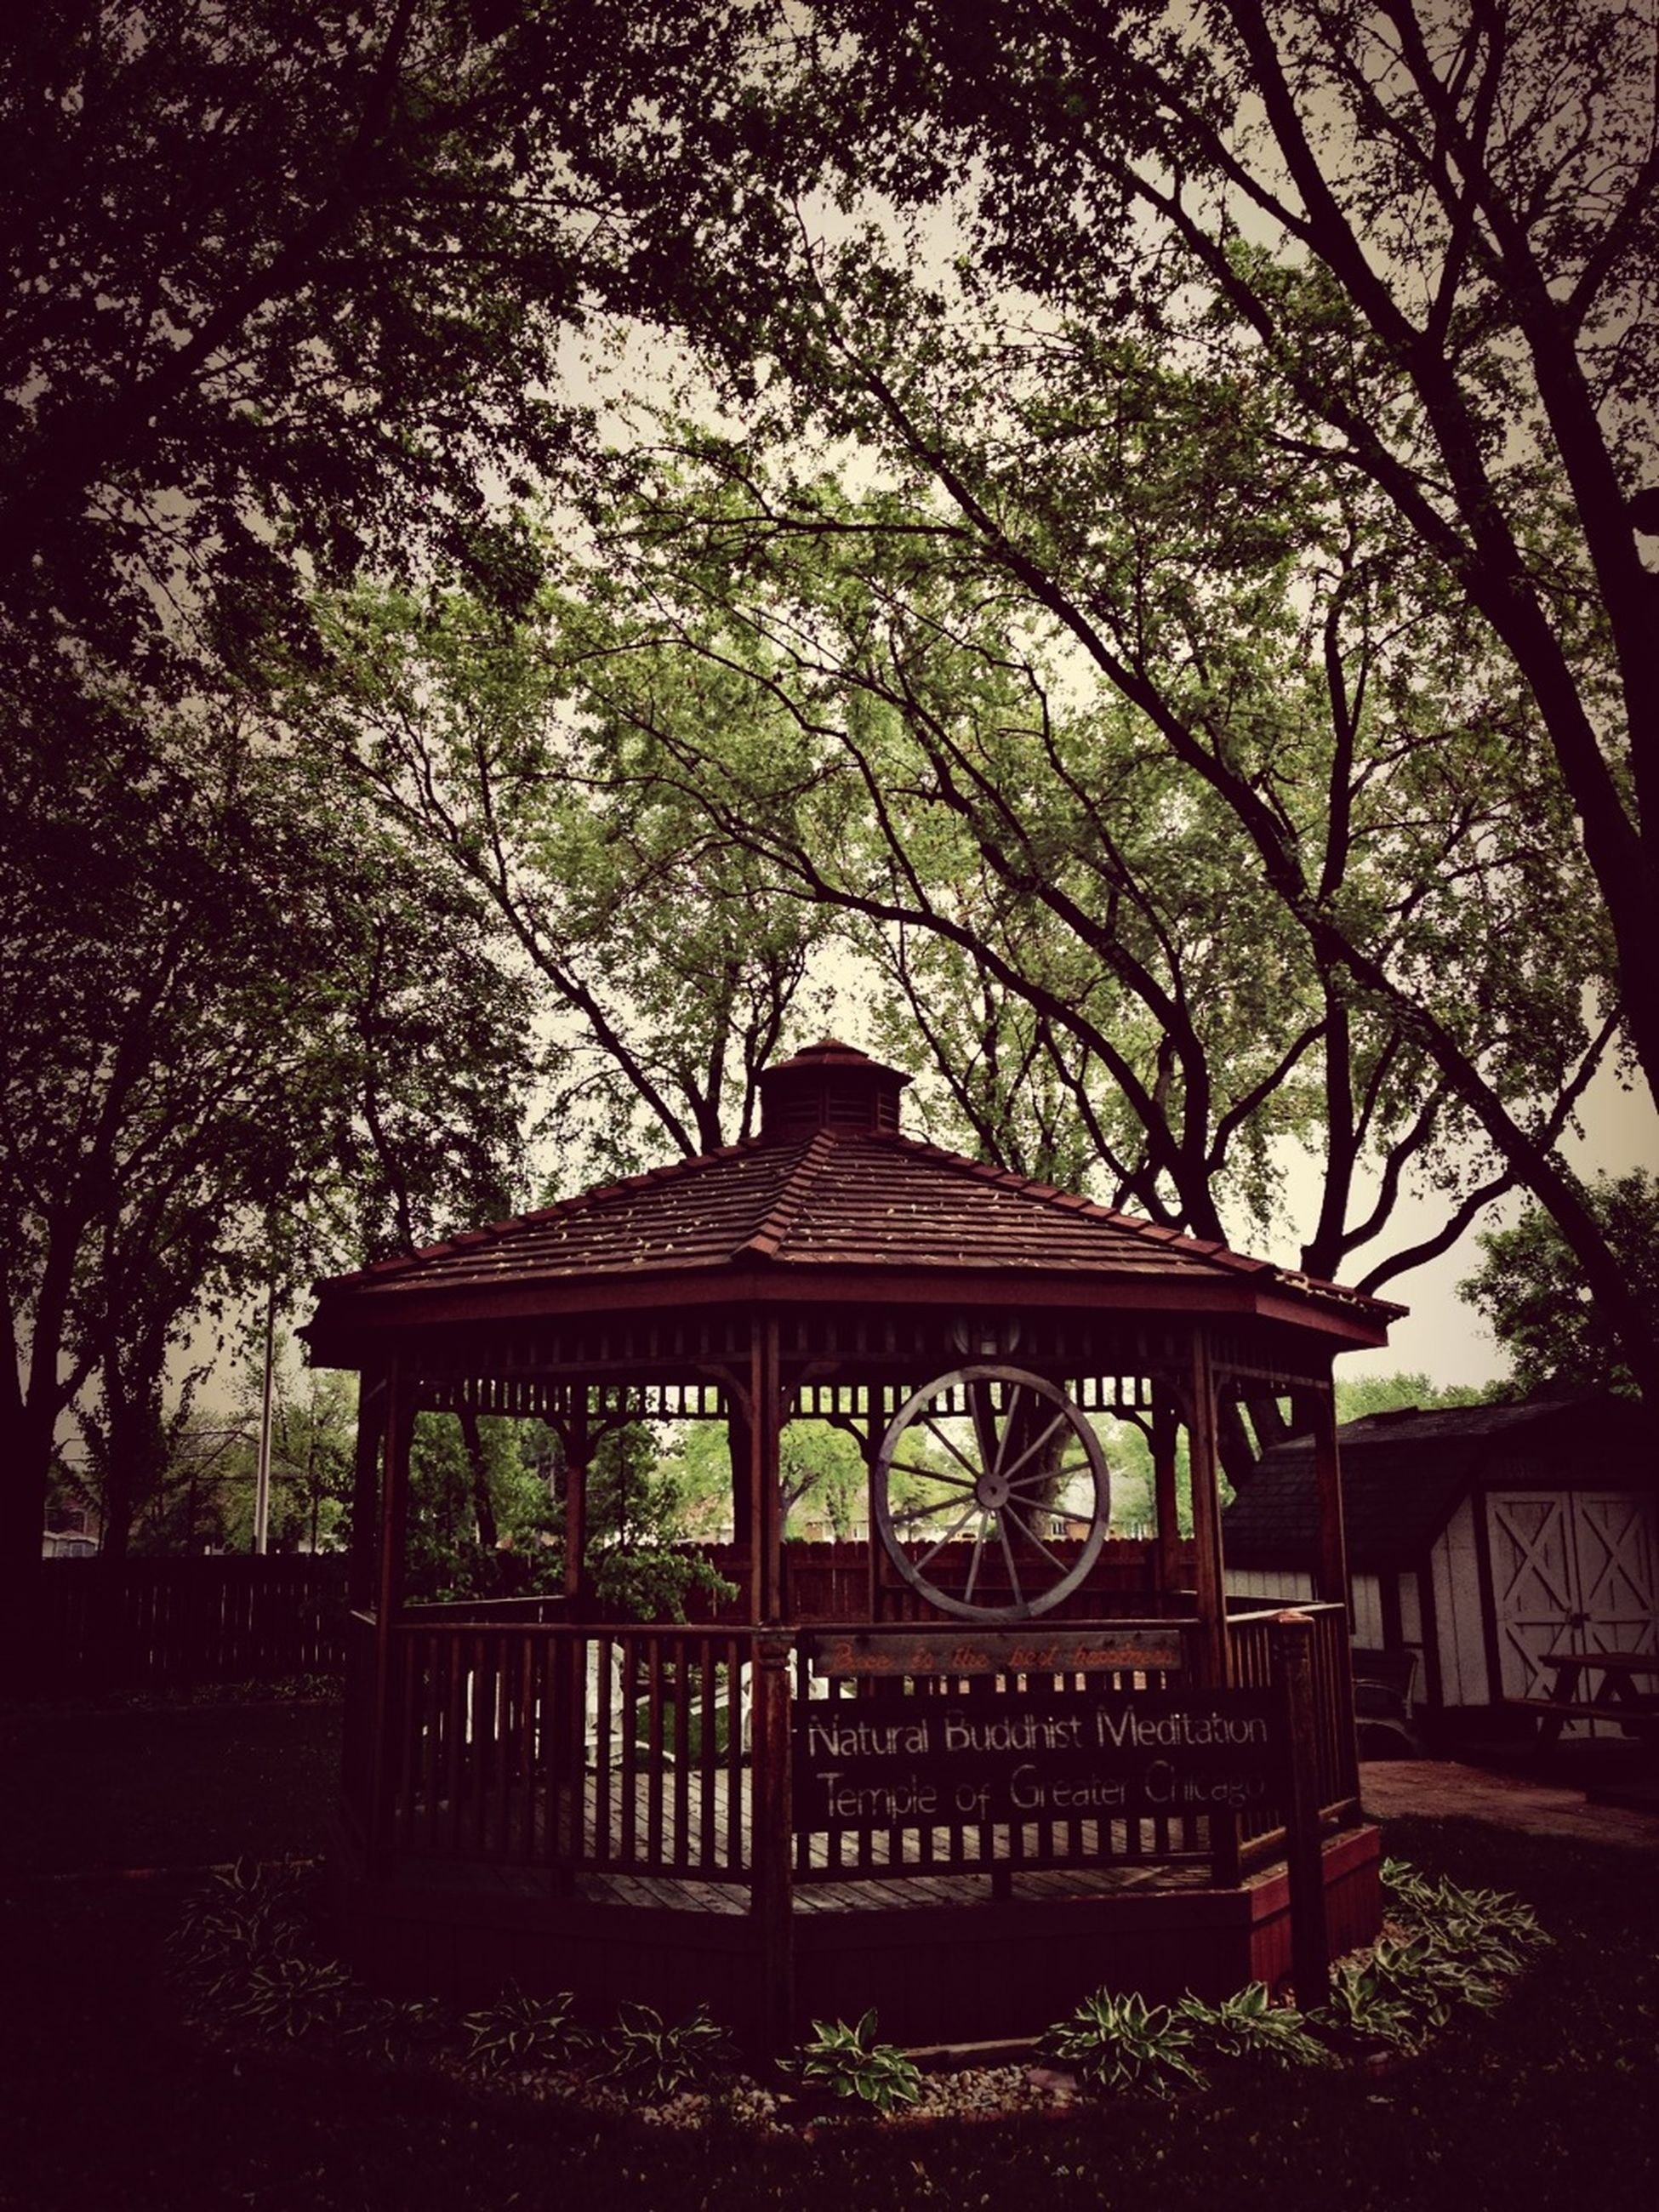 tree, built structure, branch, architecture, wood - material, growth, building exterior, tranquility, nature, bench, railing, text, sky, outdoors, day, no people, park - man made space, clear sky, wooden, tranquil scene